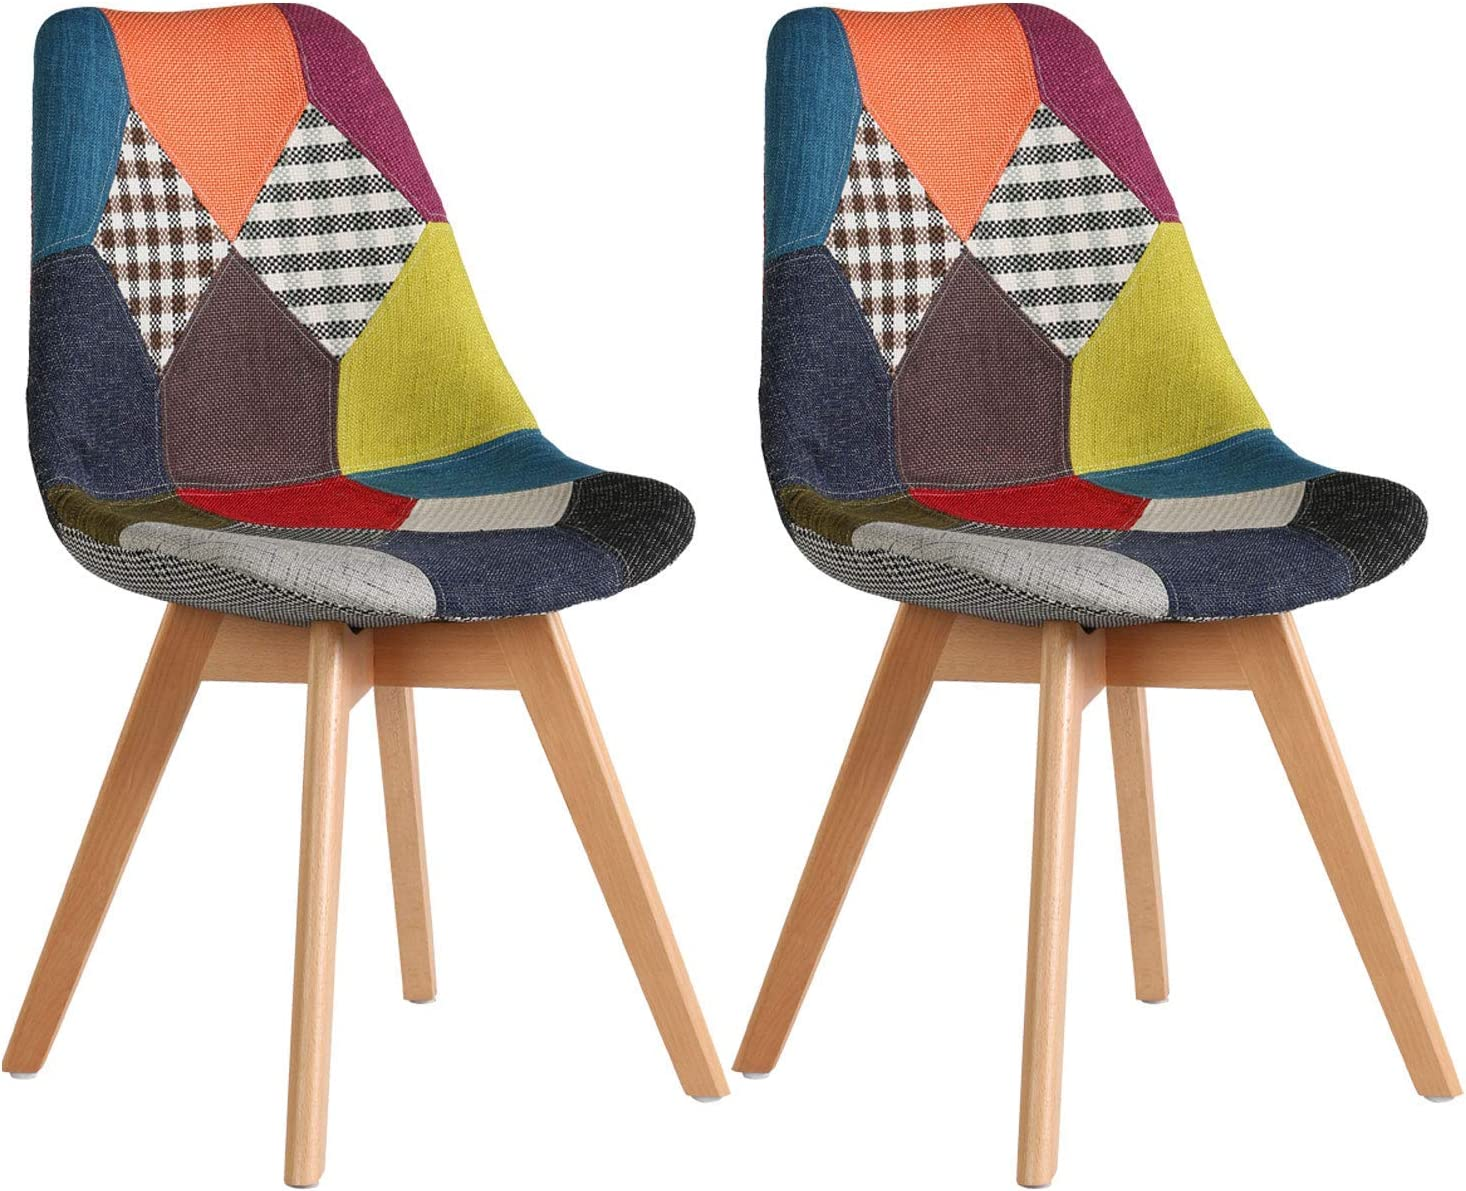 Ellexir Dining Chairs Patchwork Fabric Linen Chairs Retro Wooden Chair  (Multicolur, 10)